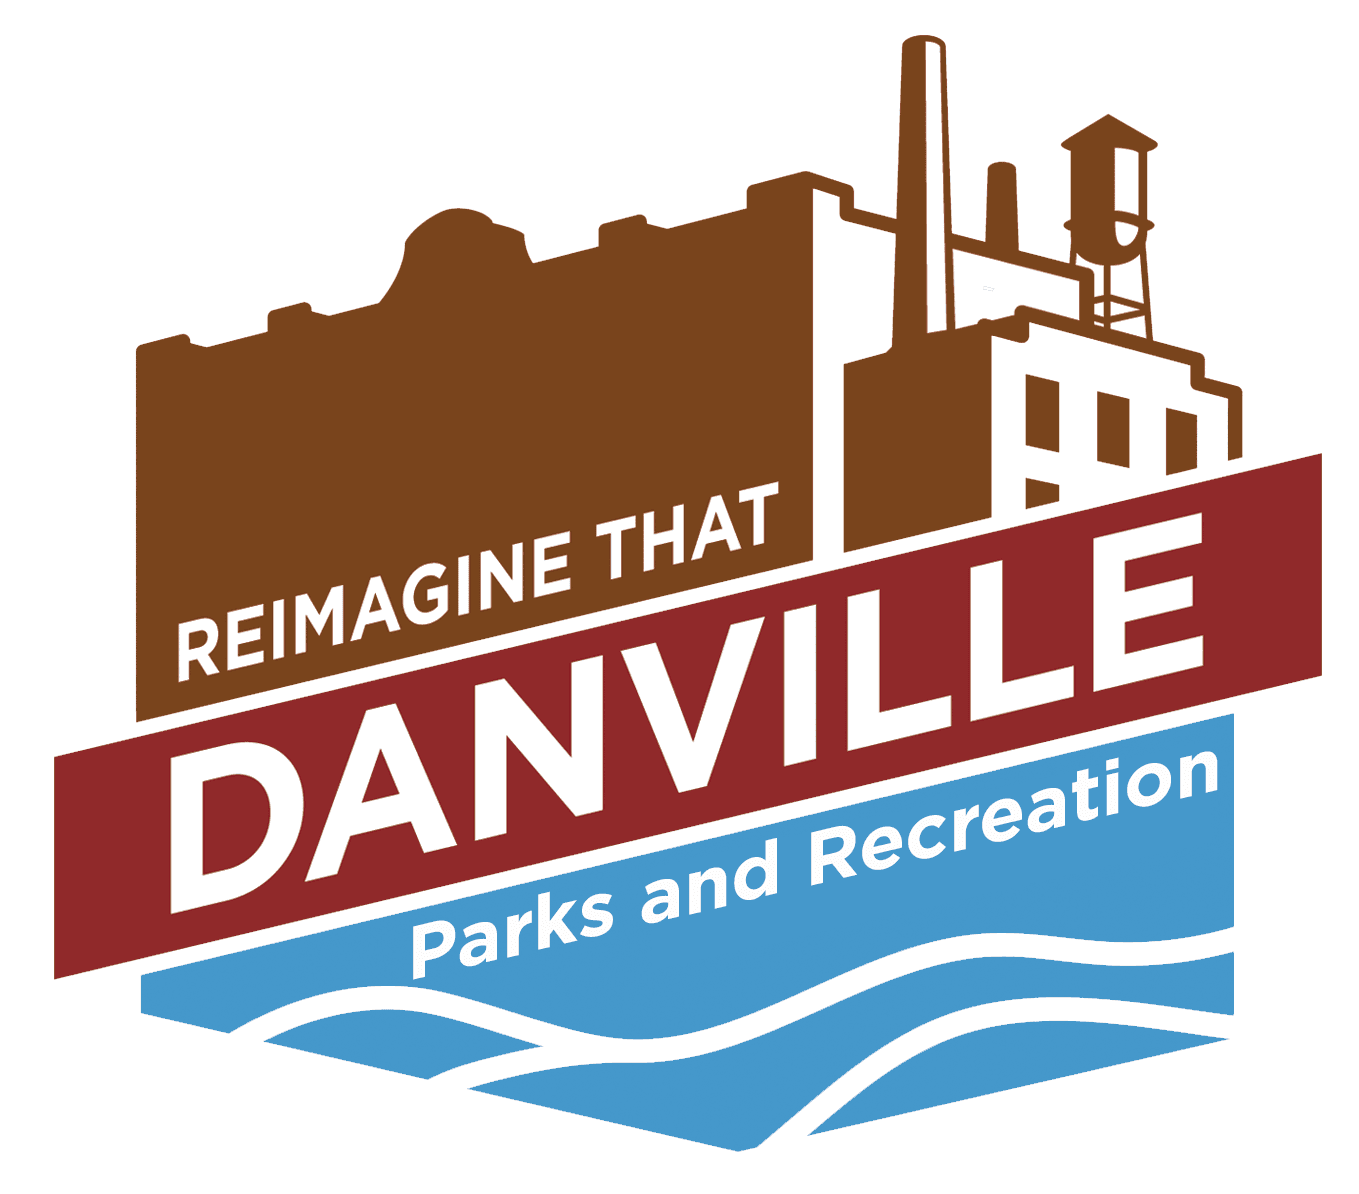 Logo for Danville Parks and Recreation